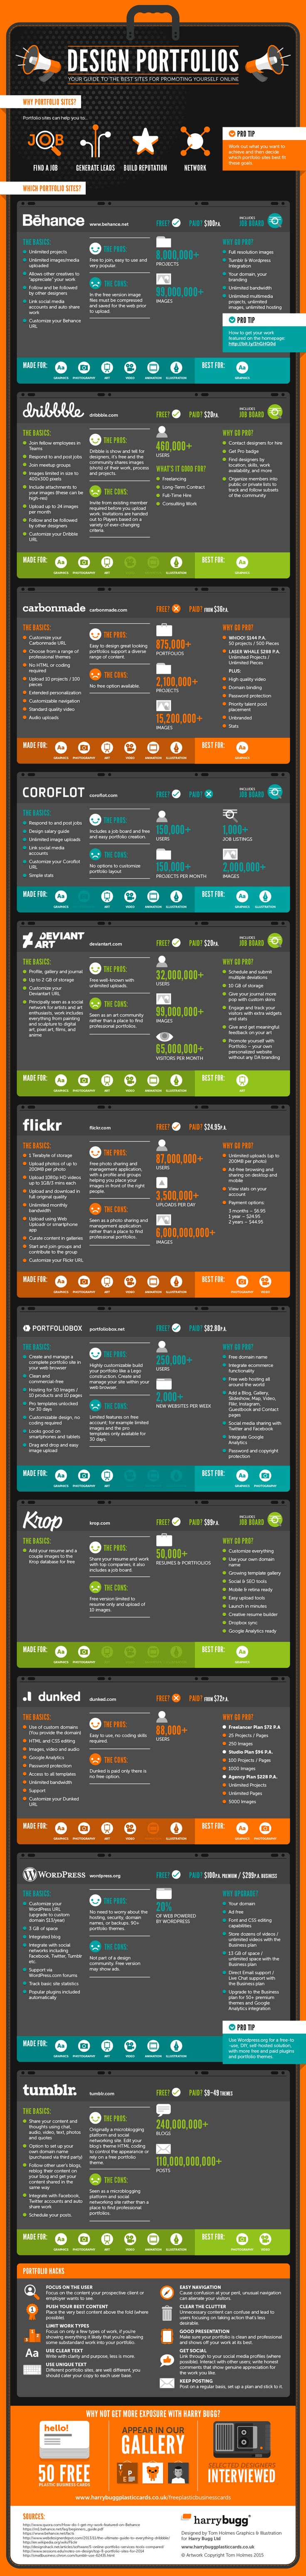 How to Find the Best Portfolio Site for You! [Infographic]